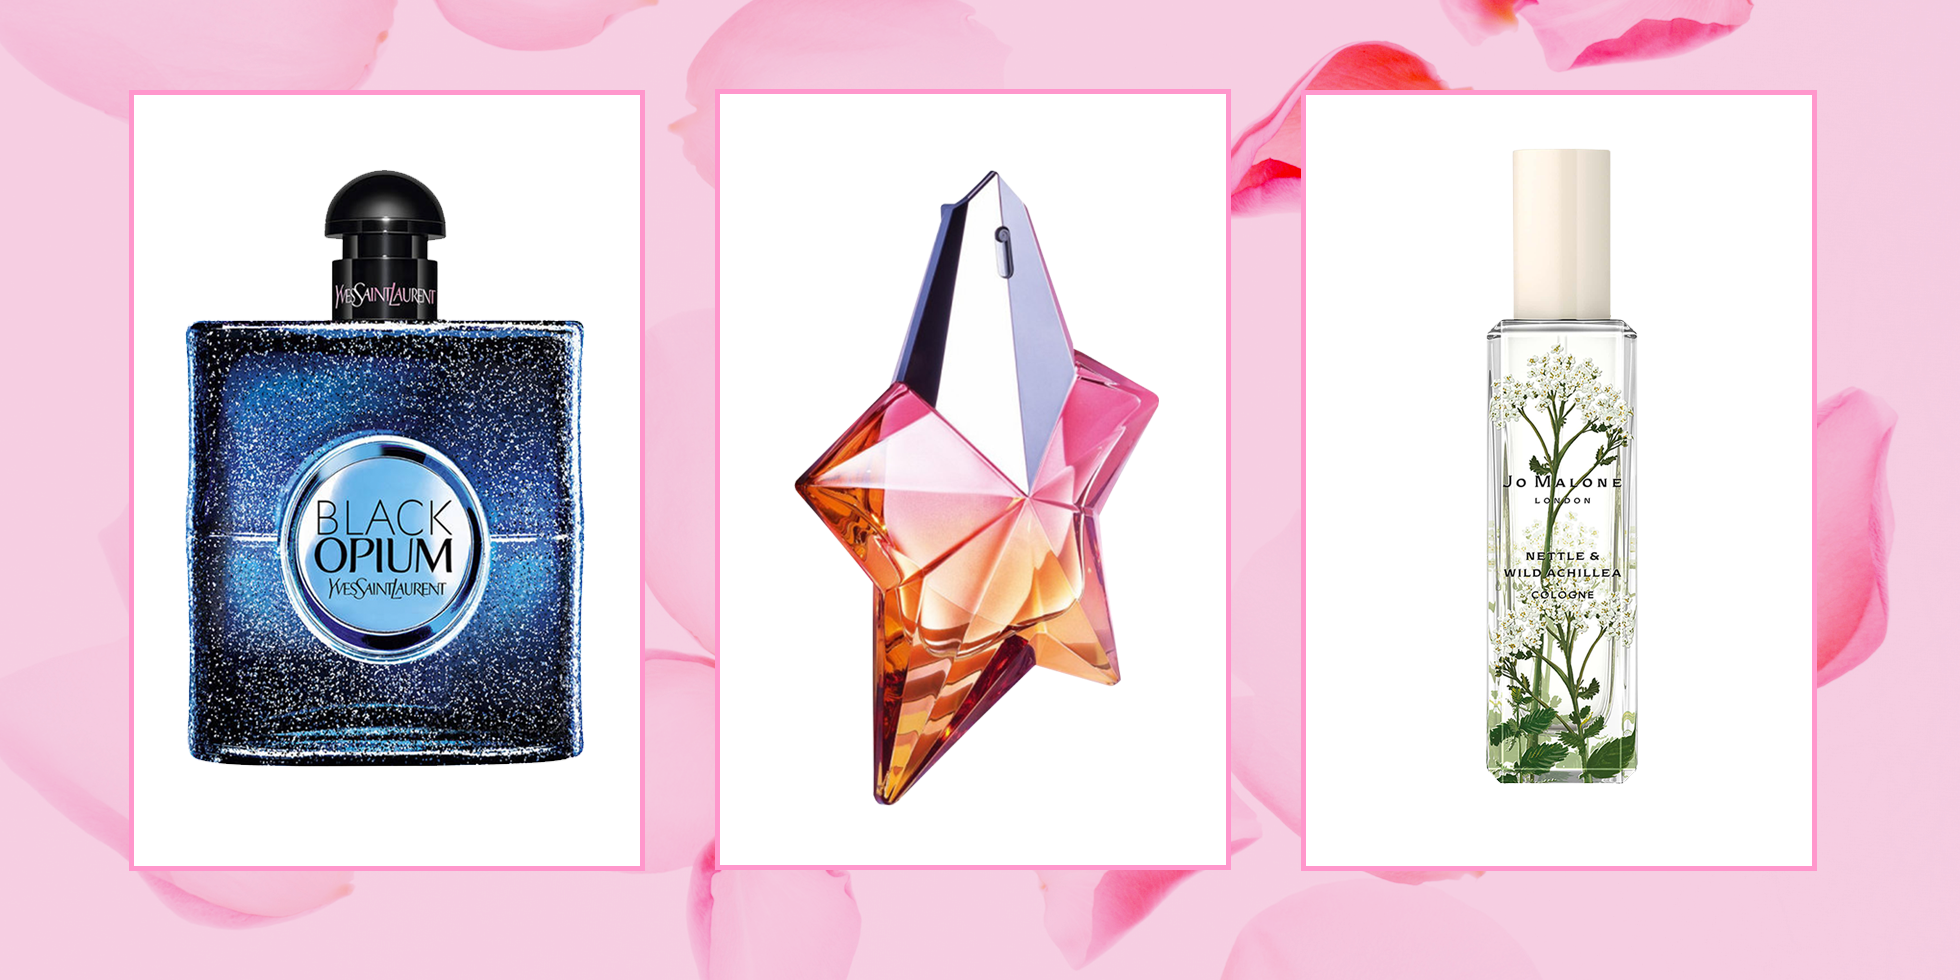 10 Of The Best Perfume New 2019 Fragrances